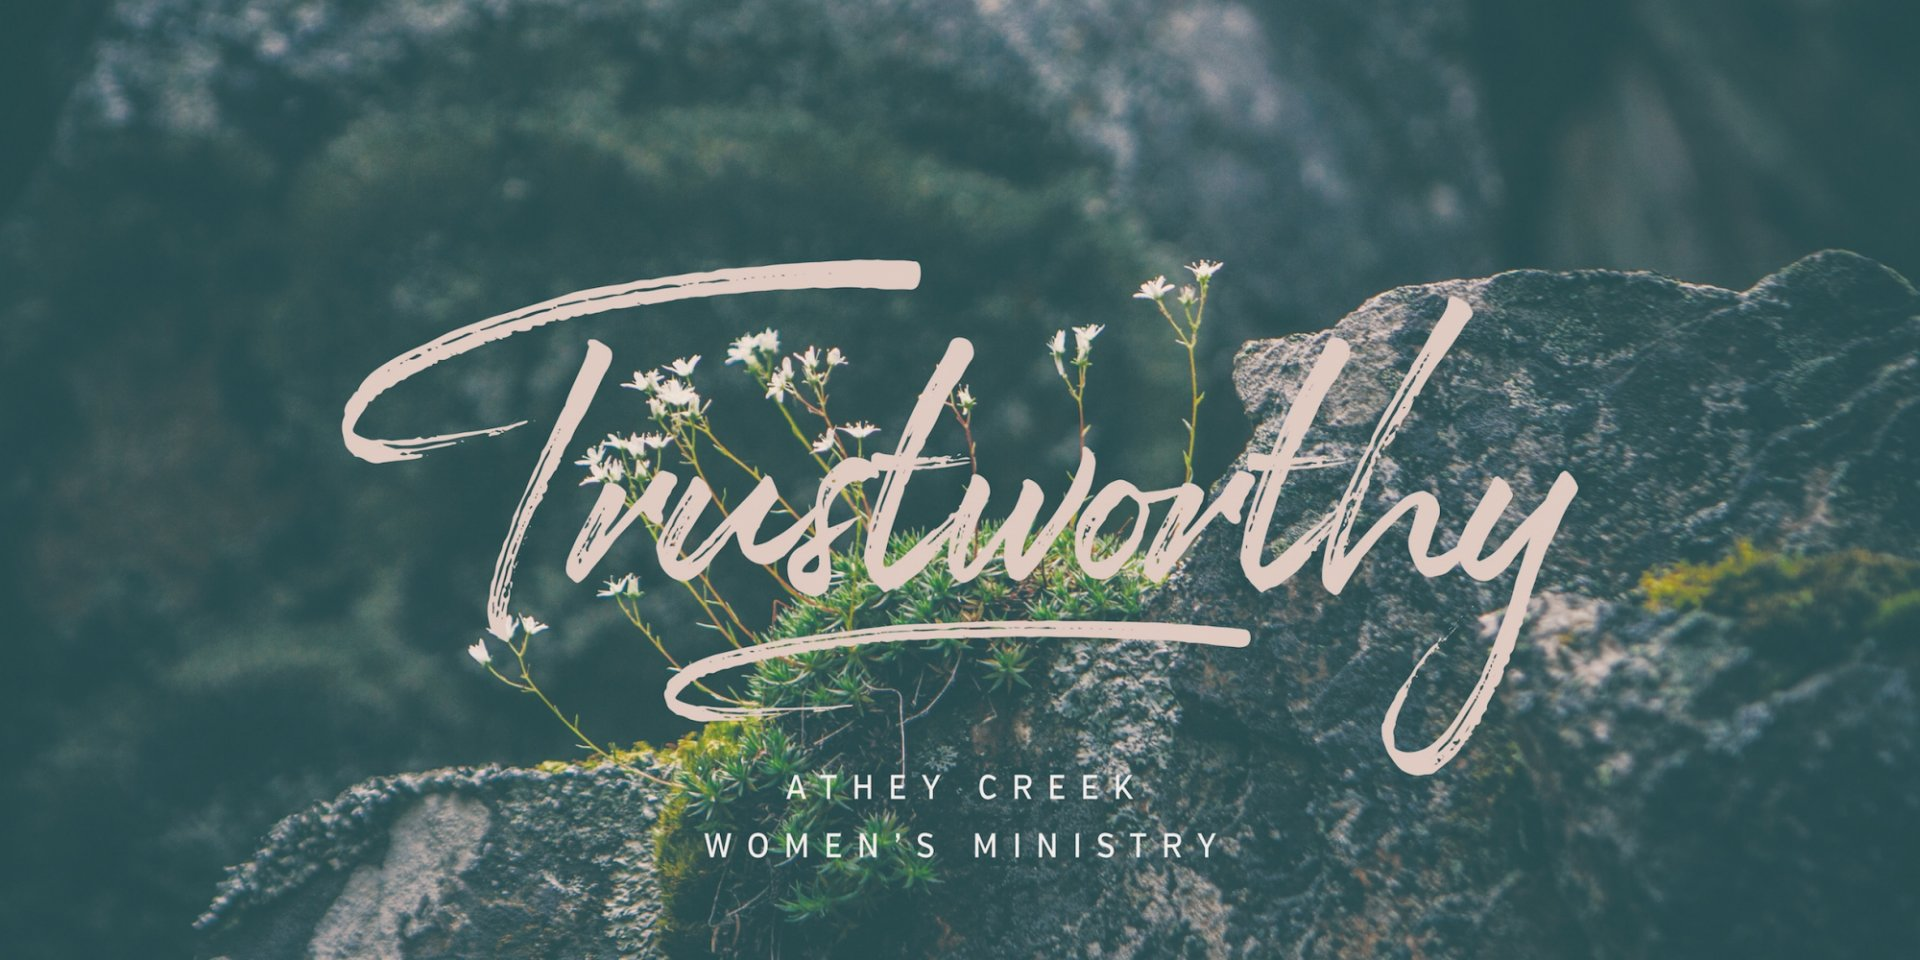 Poster forTrustworthy | Bearing His Name Unhindered